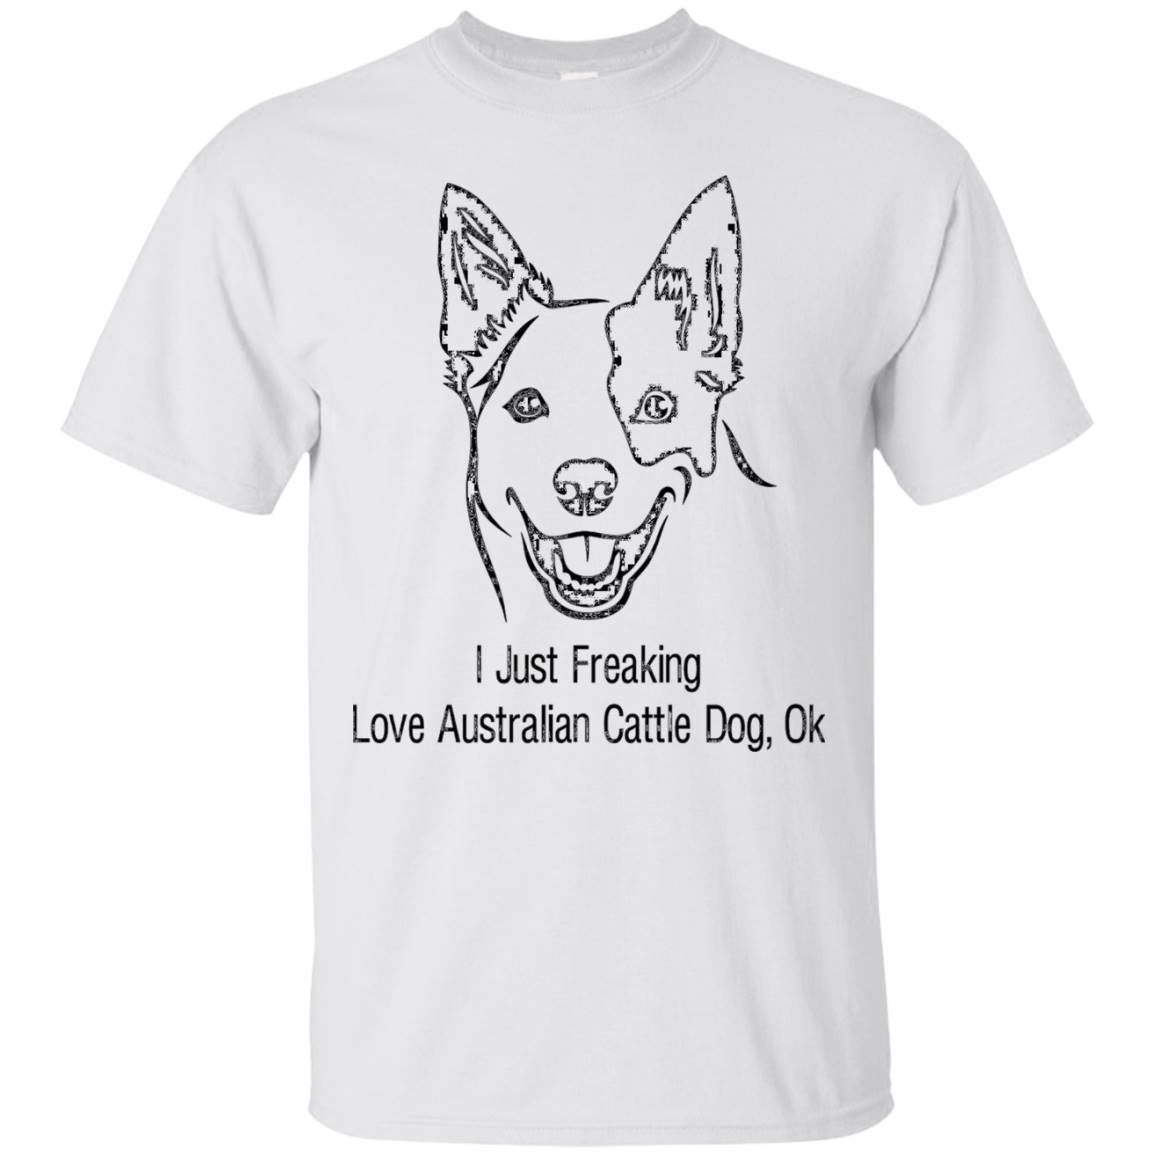 Australian Cattle-Dog T-Shirt I Just Freaking love Austral